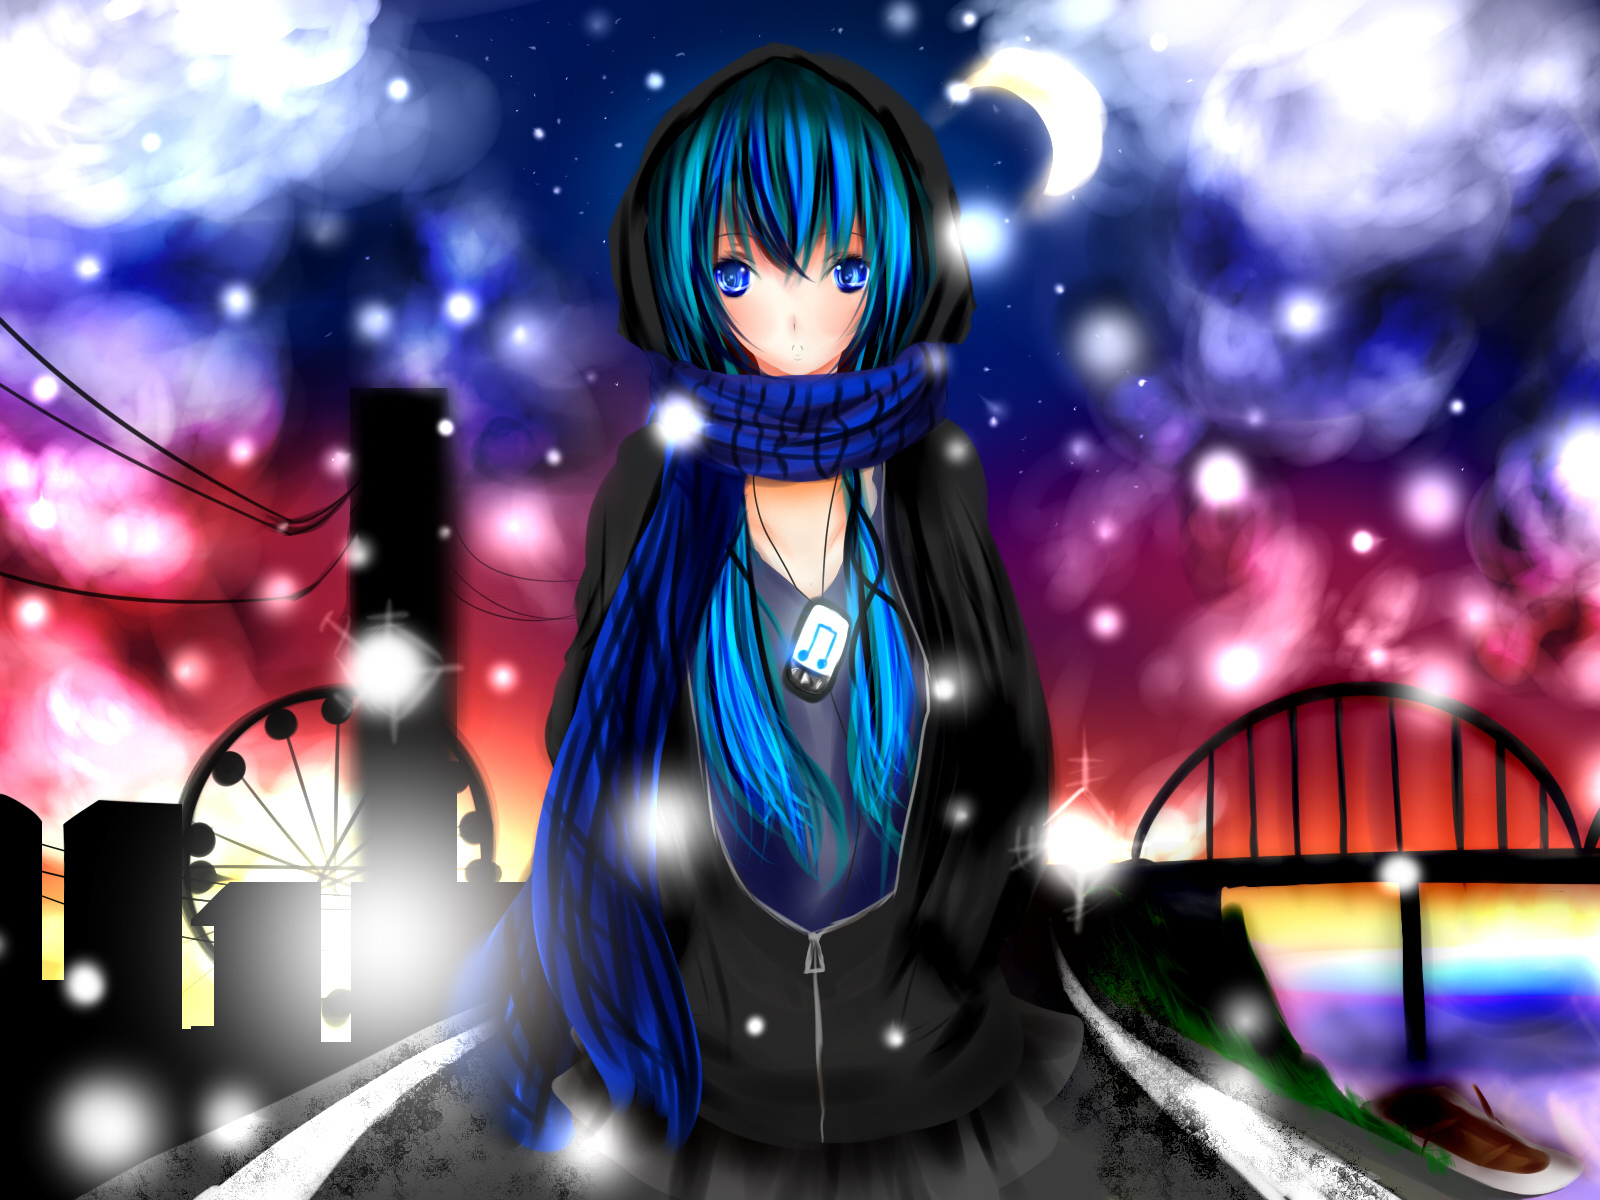 blue, eyes, mikuo, hatsune, vocaloid